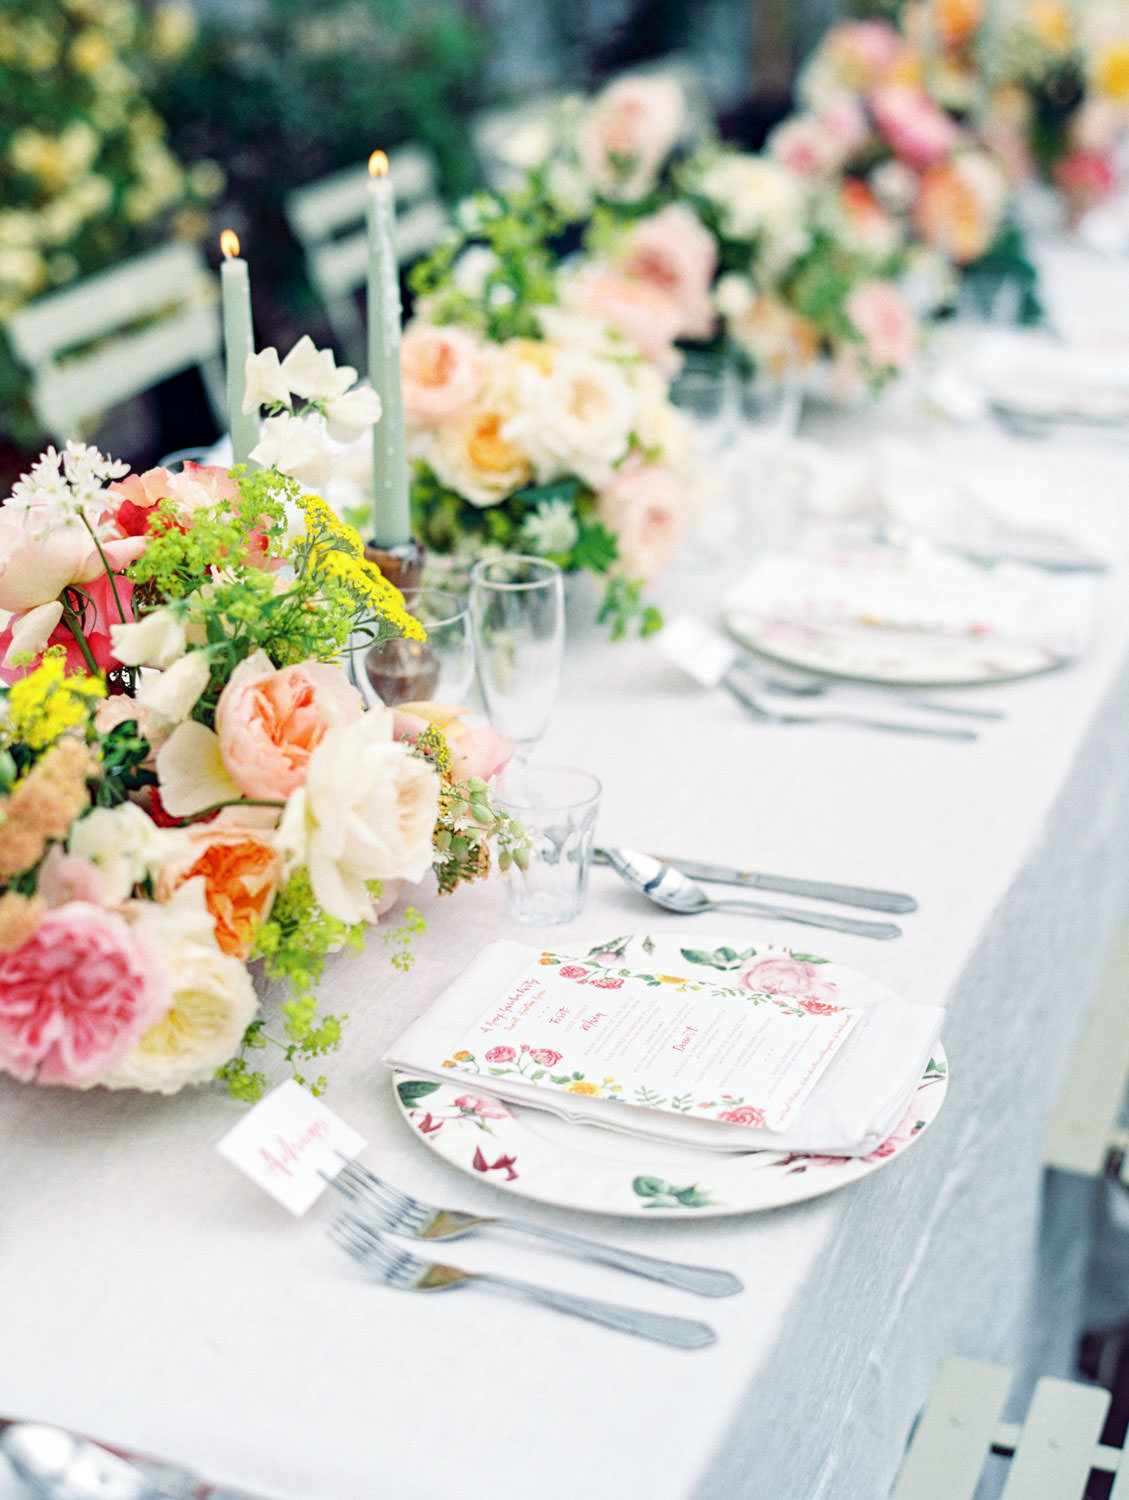 Pink, yellow, orange, muted teal, and white tablescape for lunch at David Austin Roses by Joy Proctor, Bows and Arrows flowers, Rosie Harbottle menus on the Flutter Magazine Retreat in the Cotswolds